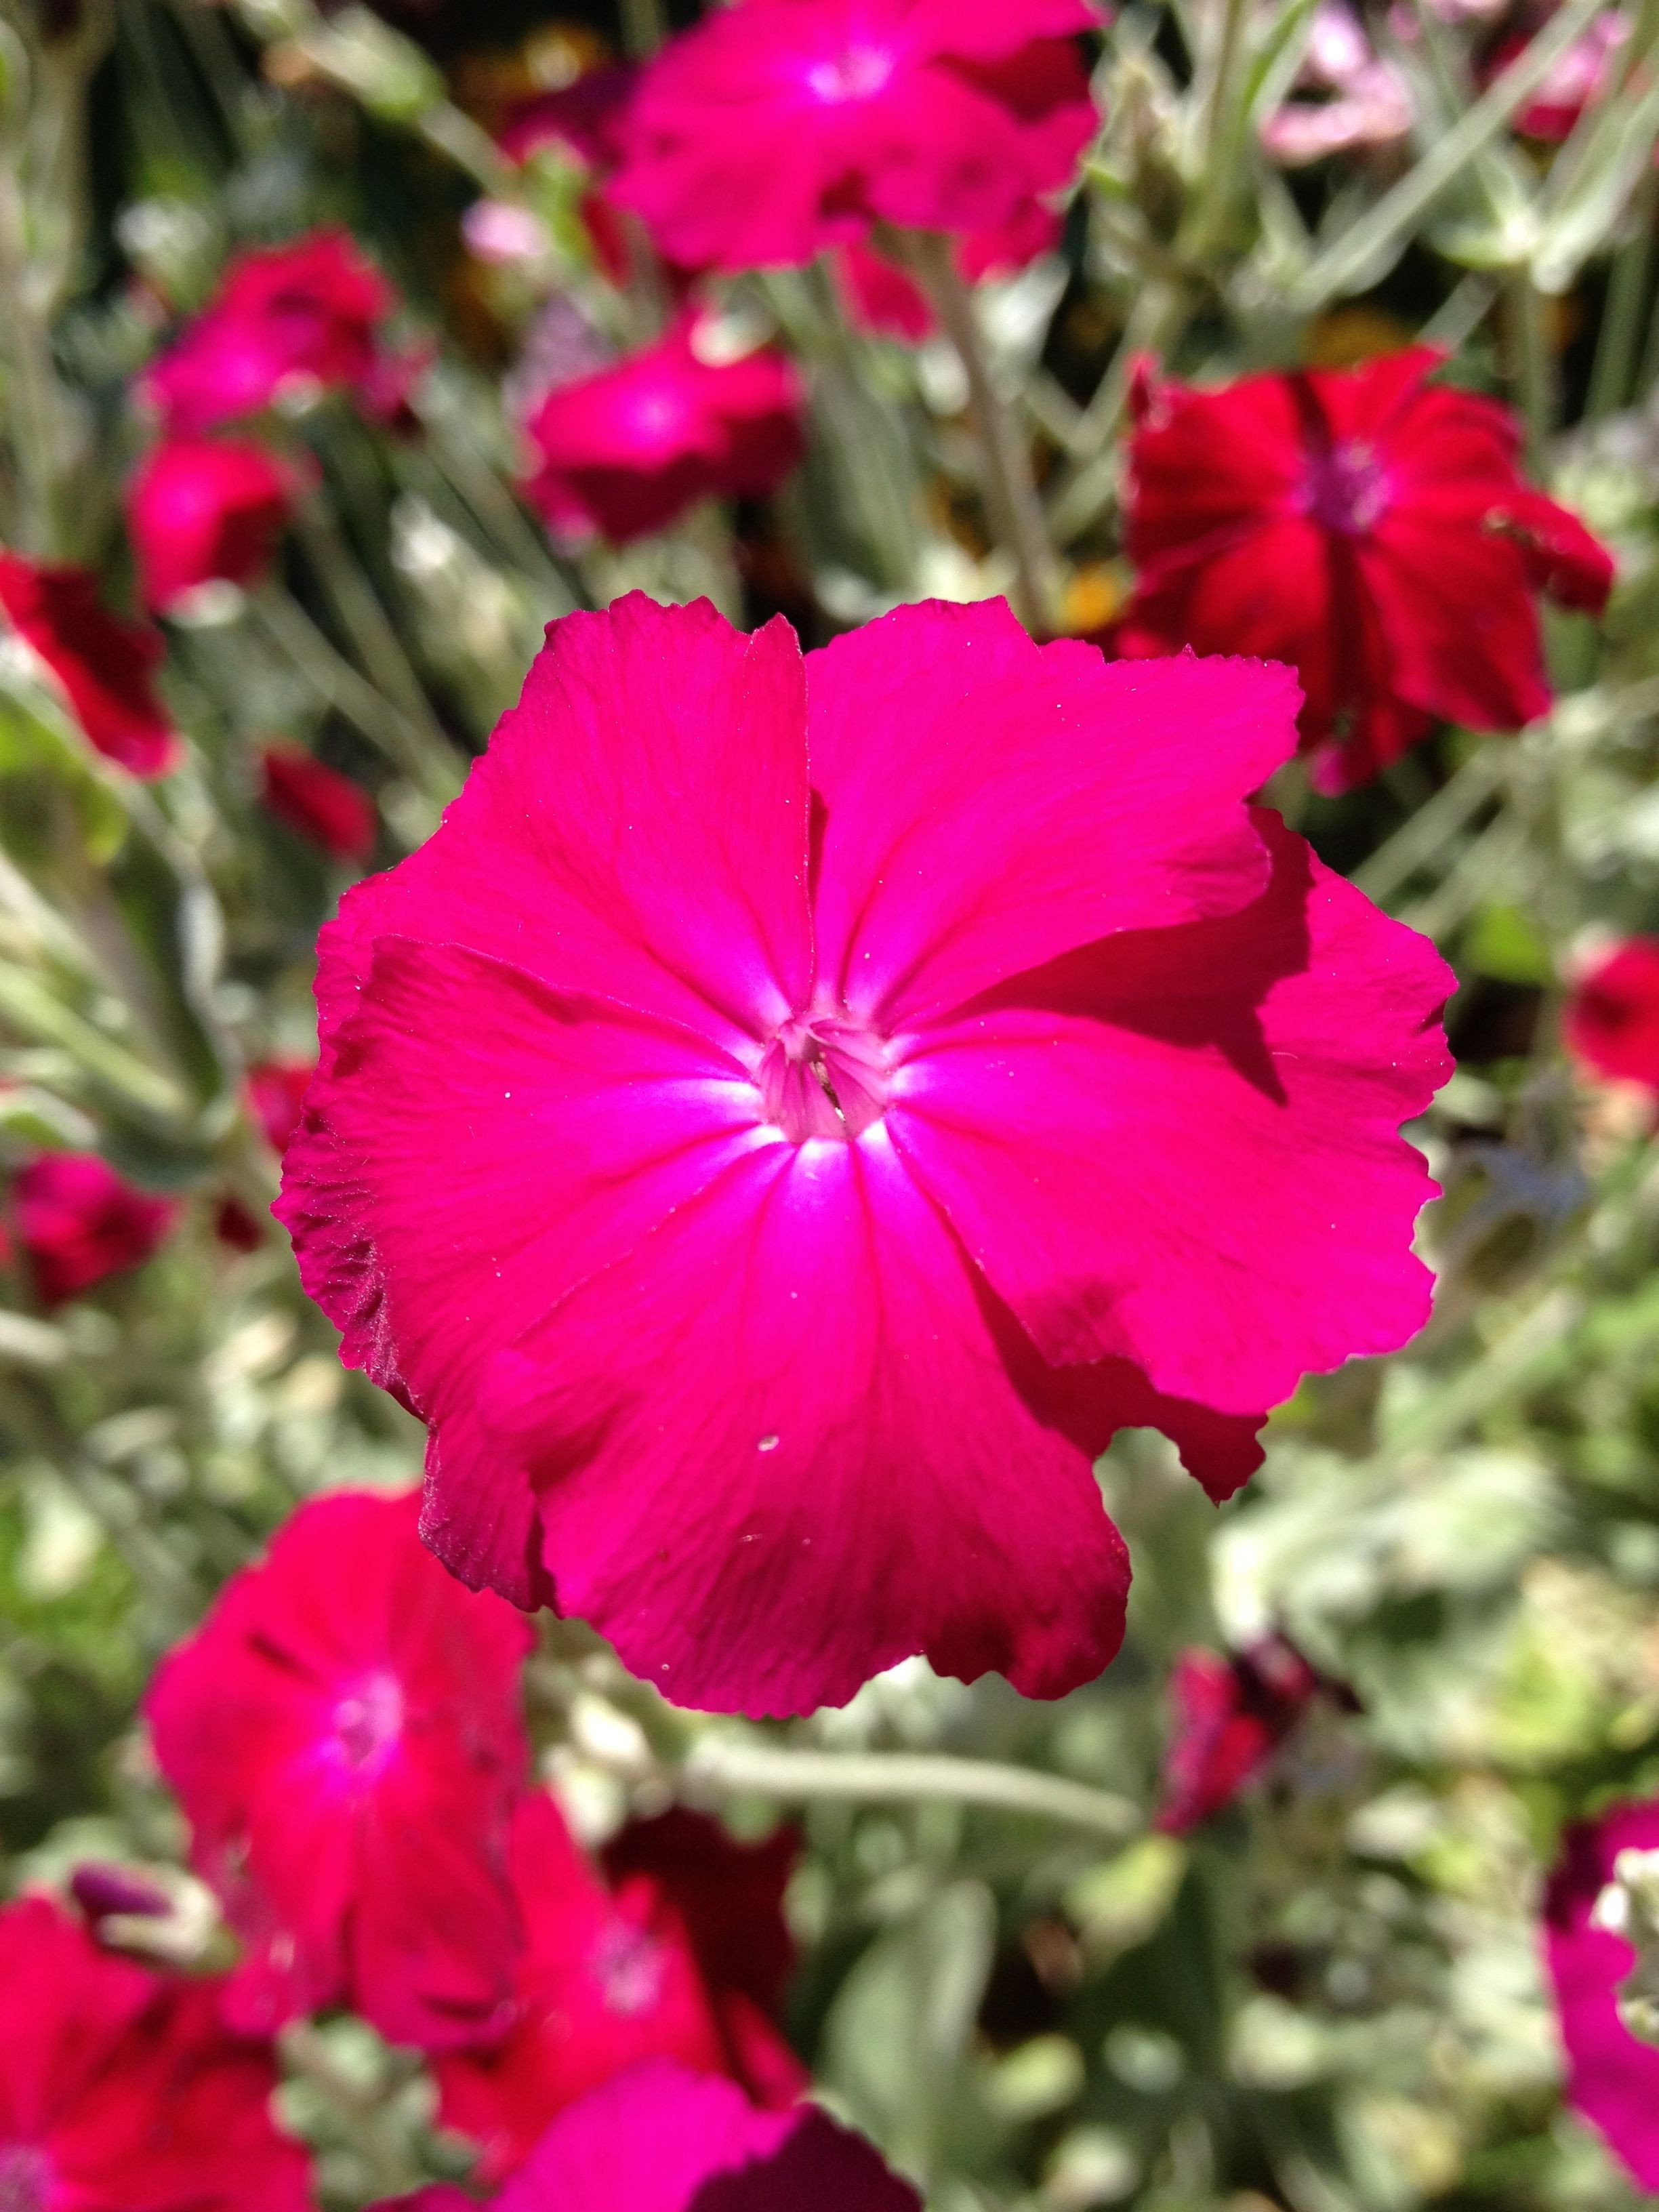 Rose Campion Lychnis Coronaria grown easily by seed silver foliage adds visual